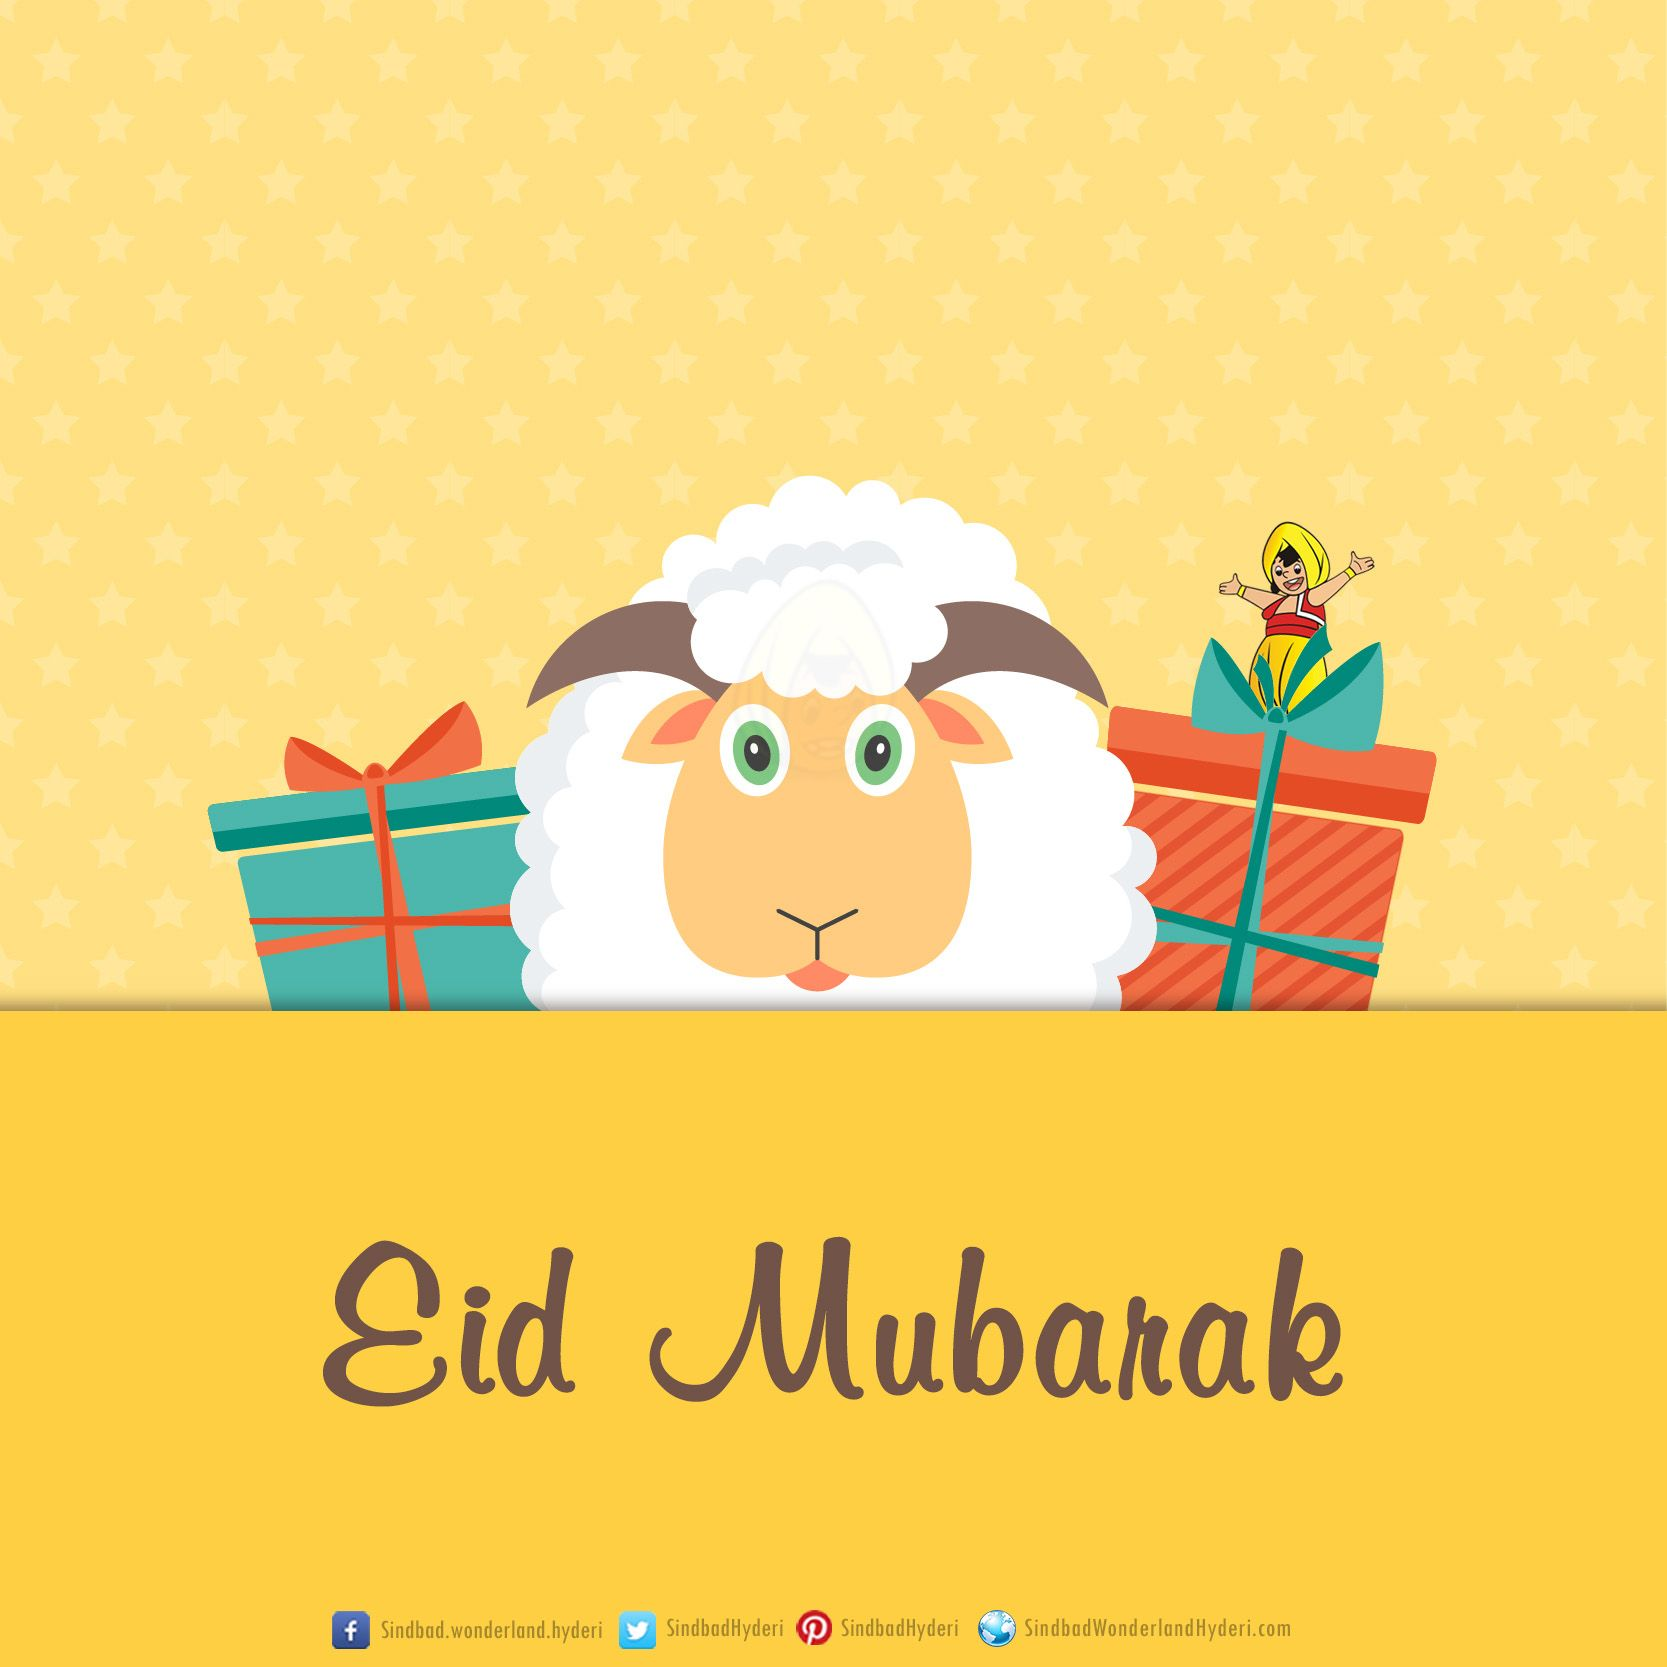 We wish you joyous celebration and showers of Almighty's